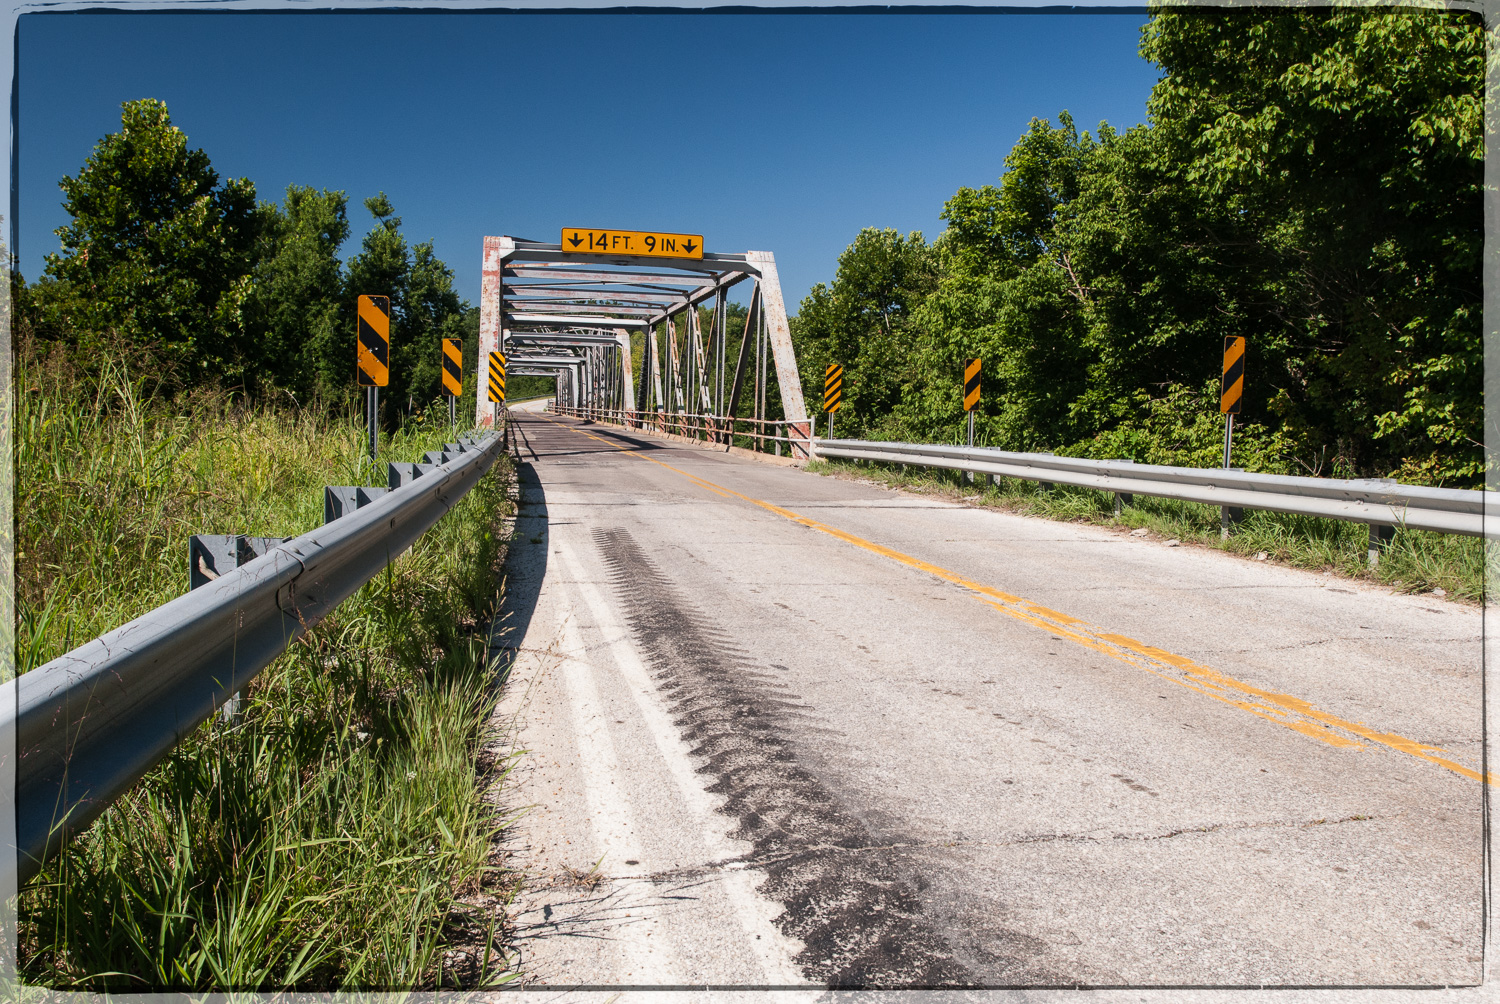 Gasconade route 66 bridge in 2008. ©Pics ON Route 66